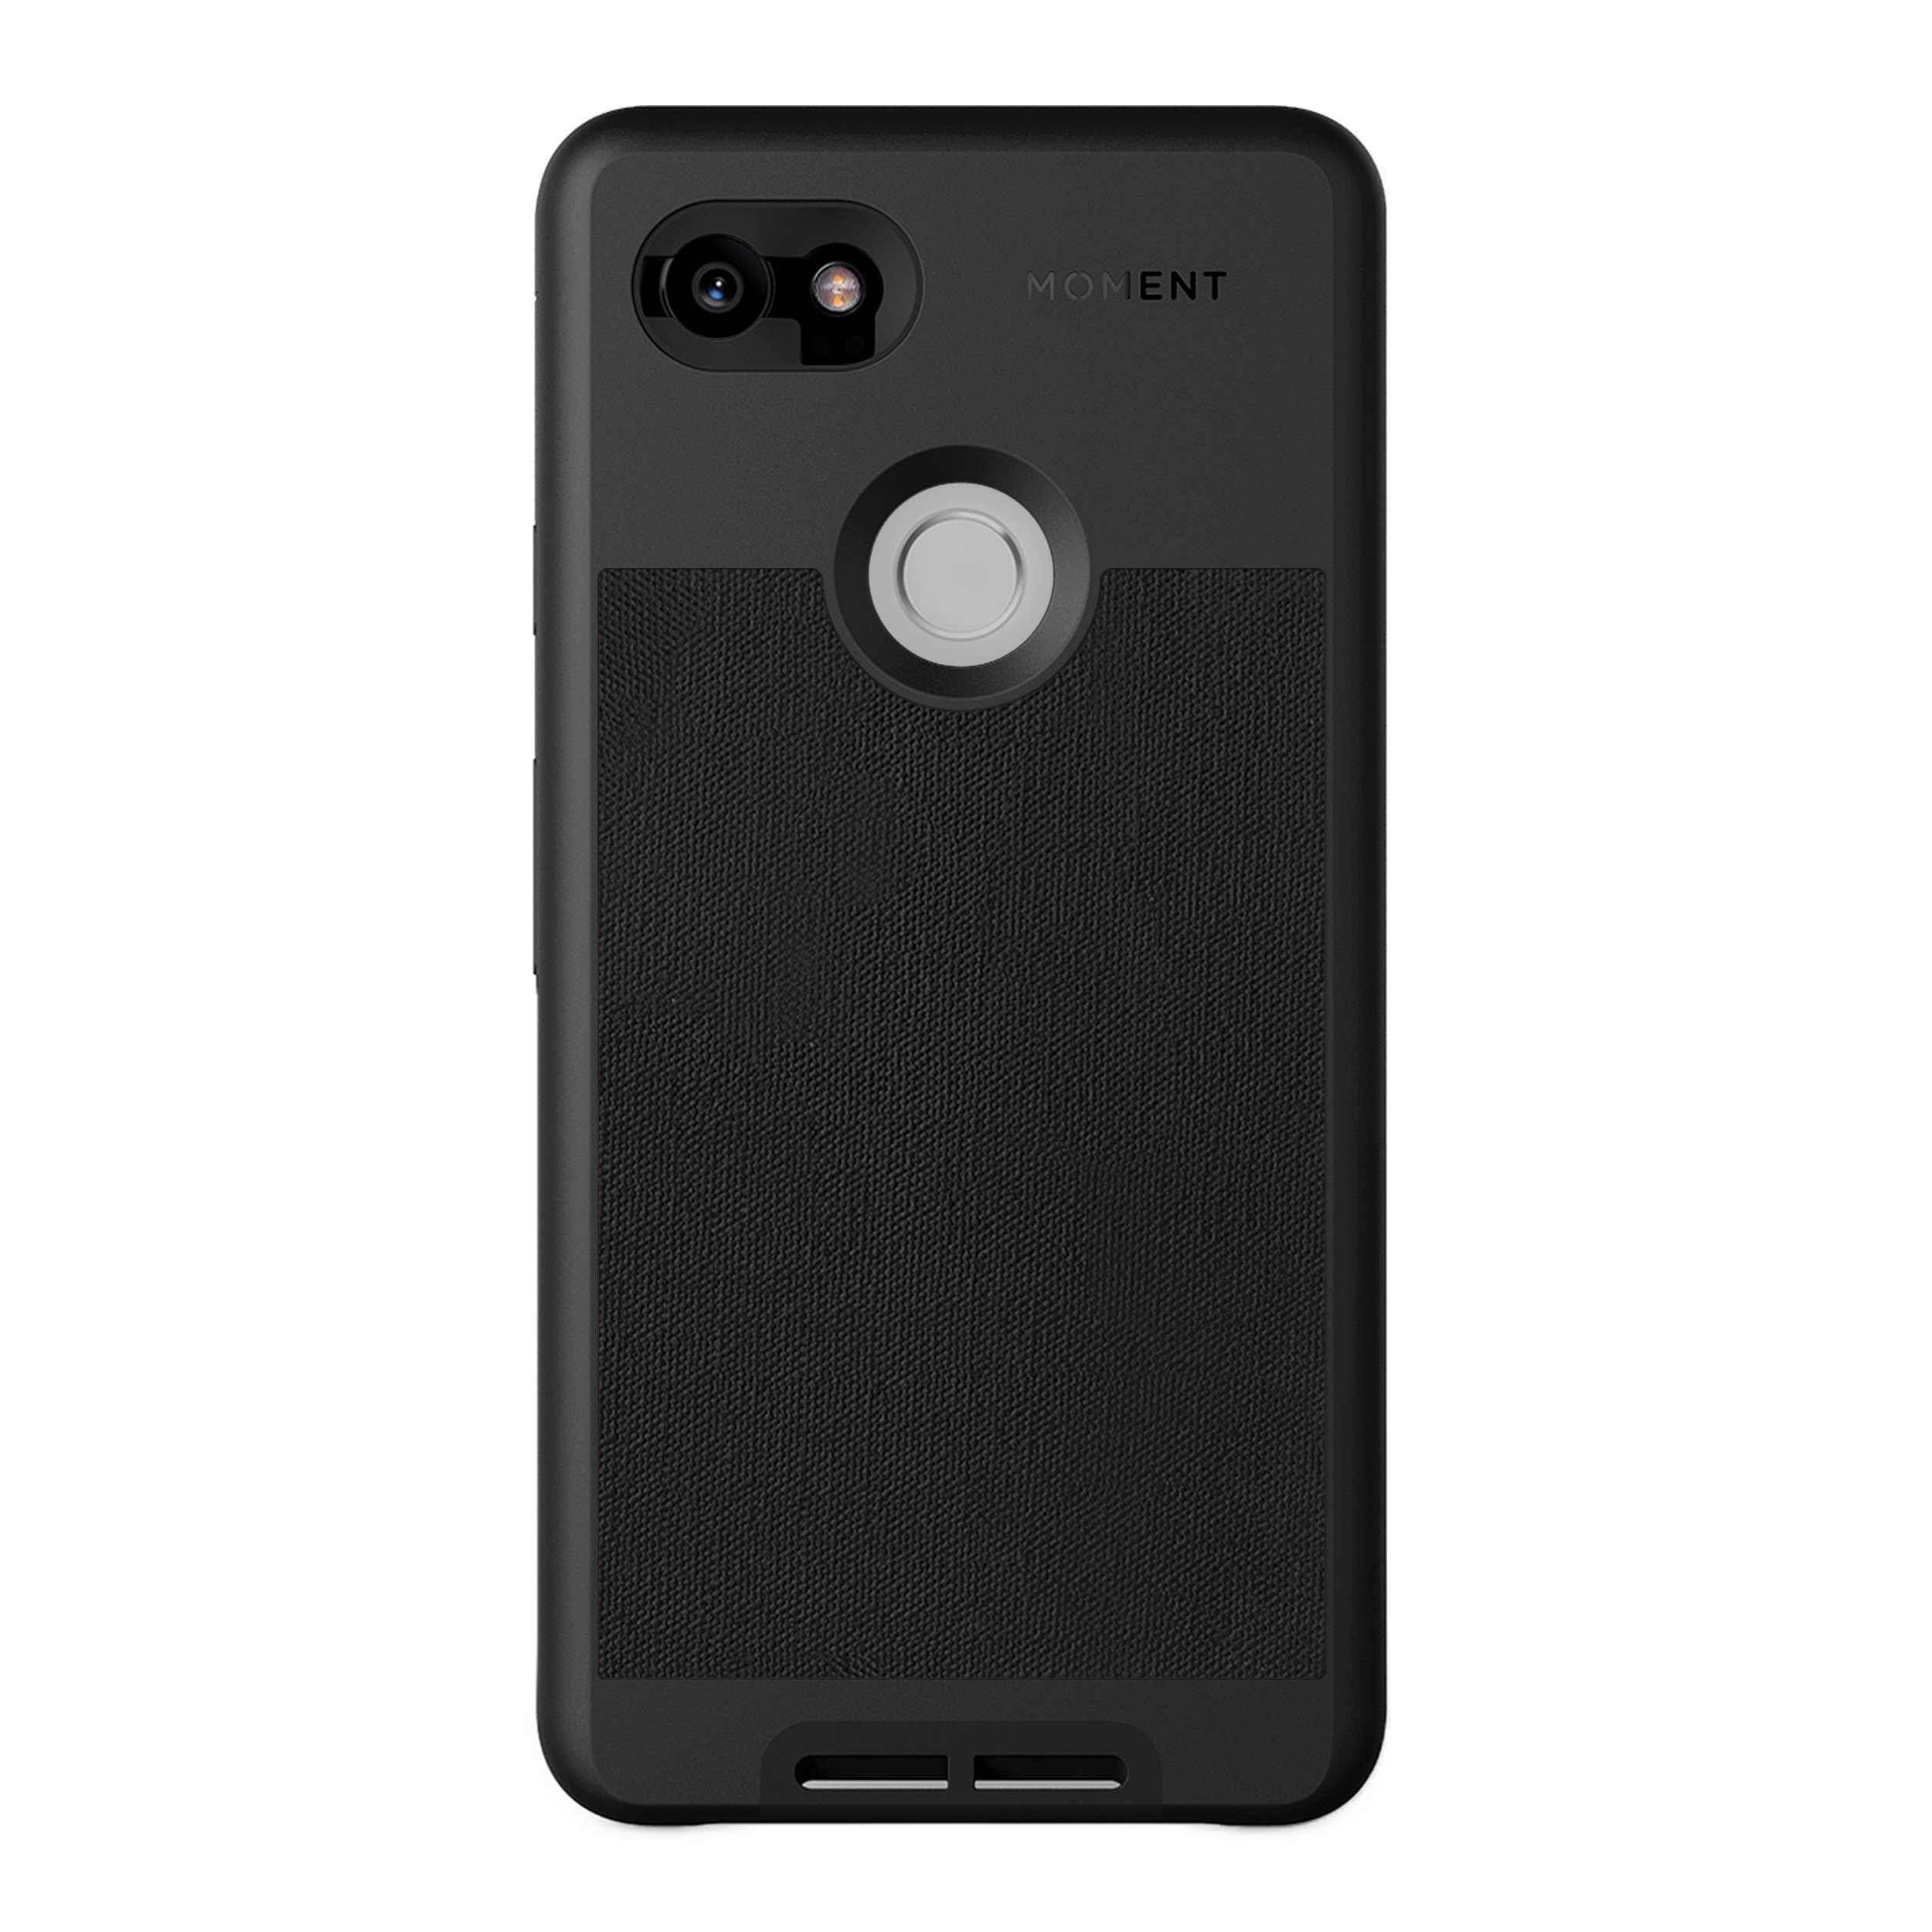 ویکالا · خرید  اصل اورجینال · خرید از آمازون · Pixel 2 XL Case || Moment Photo Case in Black Canvas - Thin, Protective, Wrist Strap Friendly case for Camera Lovers. wekala · ویکالا